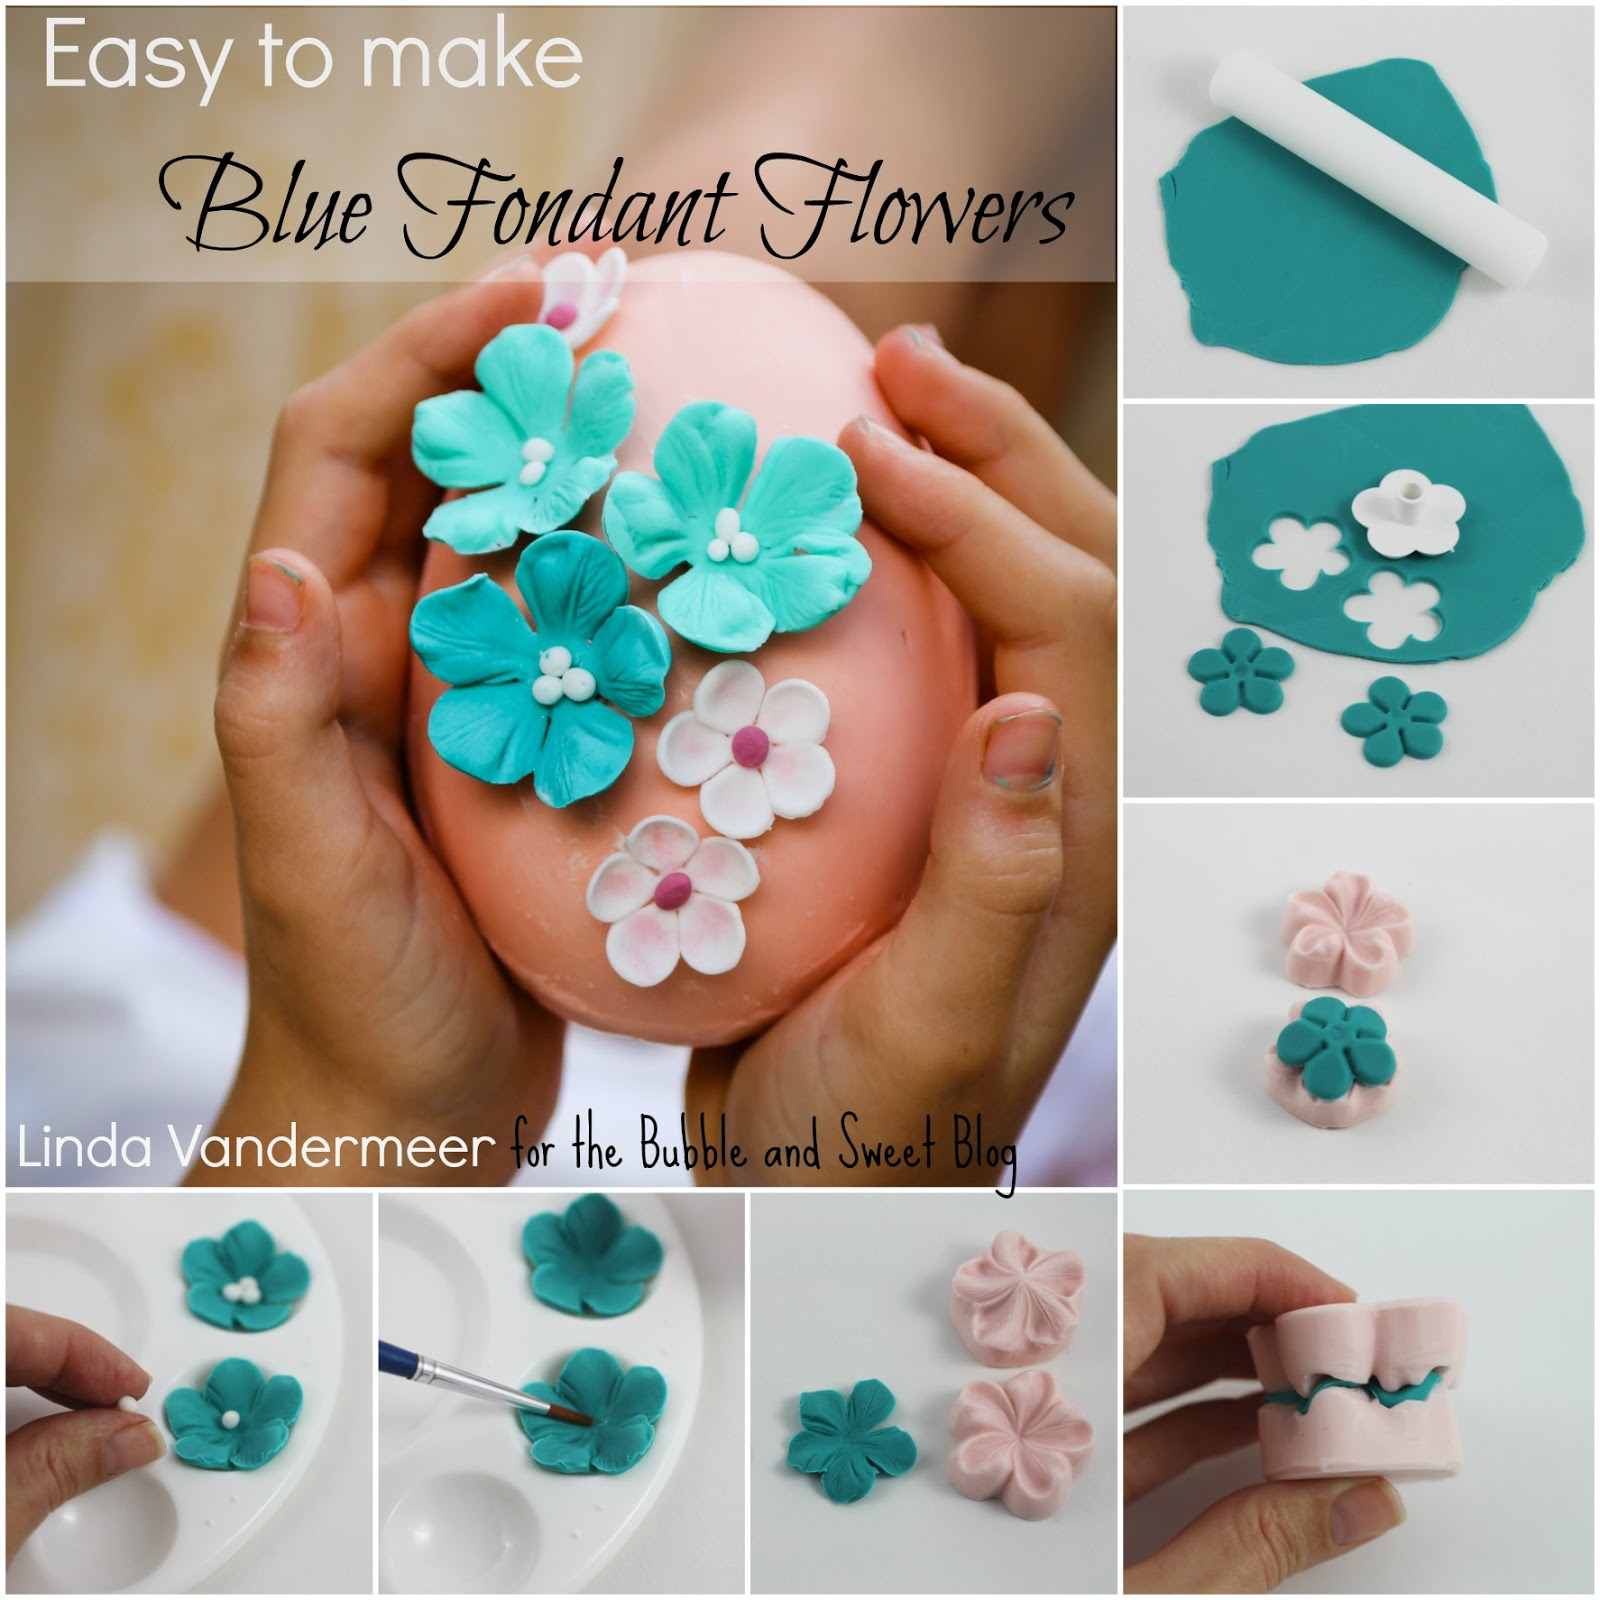 Decorate Cake With Fondant Flowers : Bubble and Sweet: Easy to make Blue Fondant Flowers